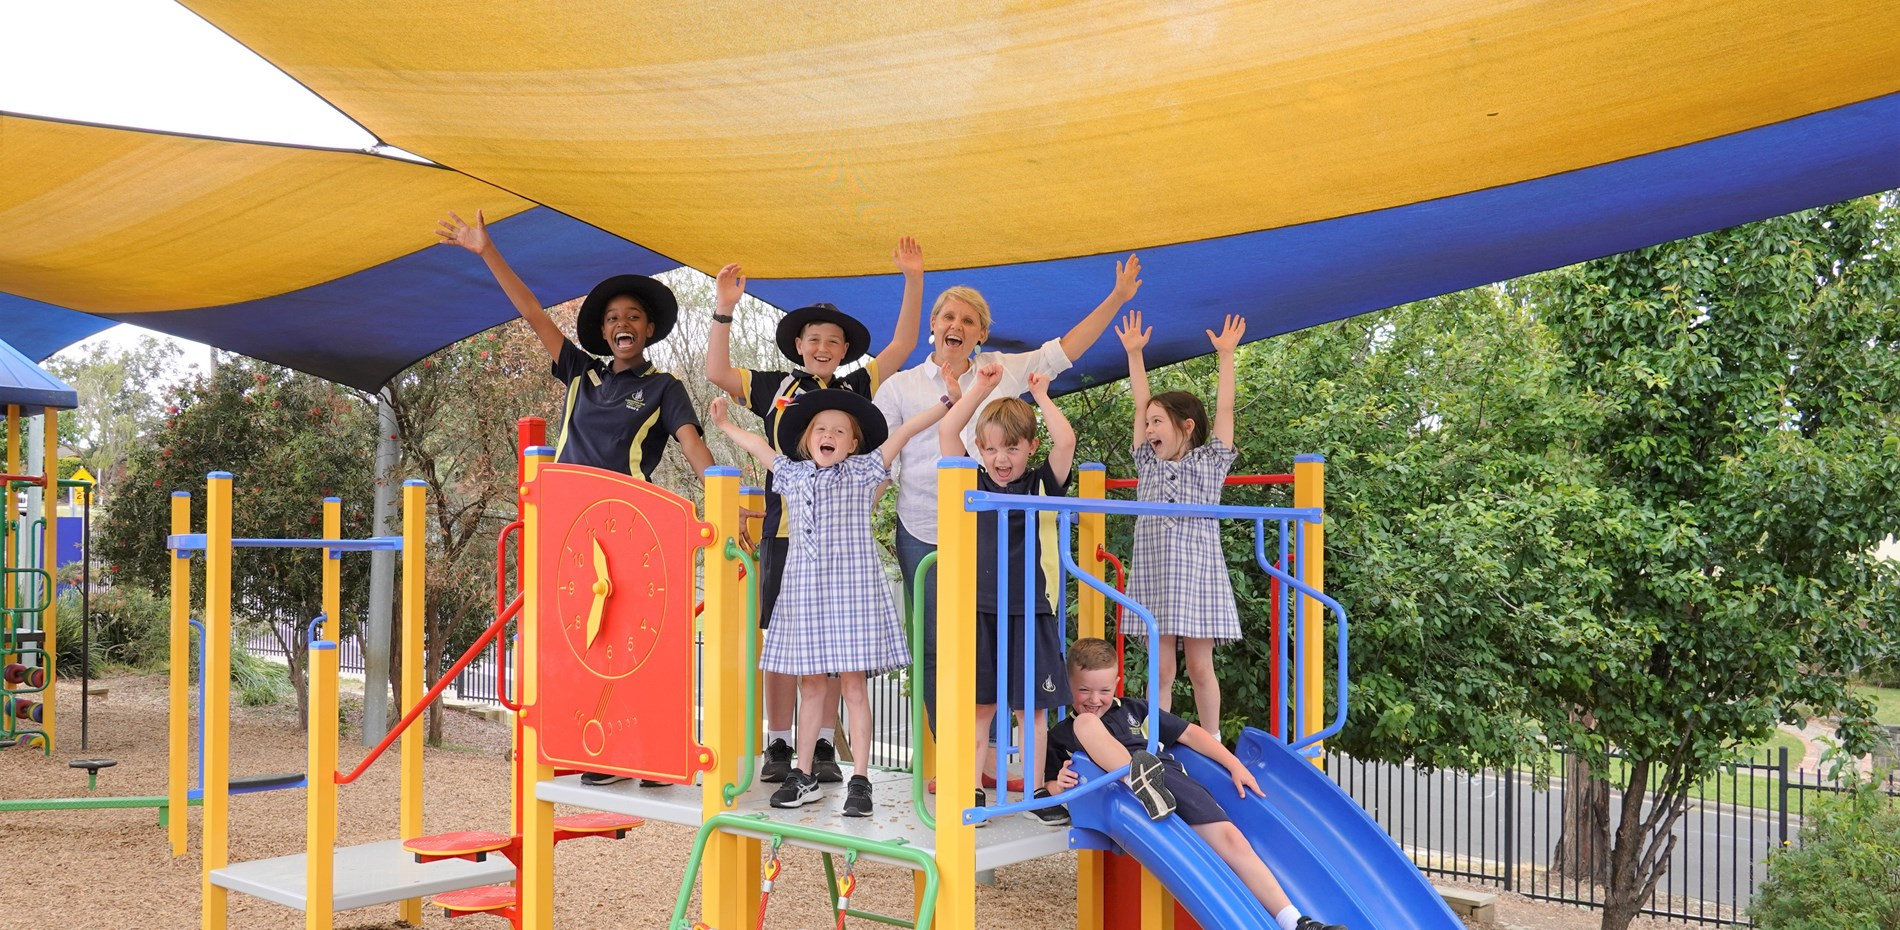 MEDIA RELEASE - NEW JUNIOR PLAYGROUND A BIG HIT WITH STUDENTS - 15 DECEMBER 2020 Main Image